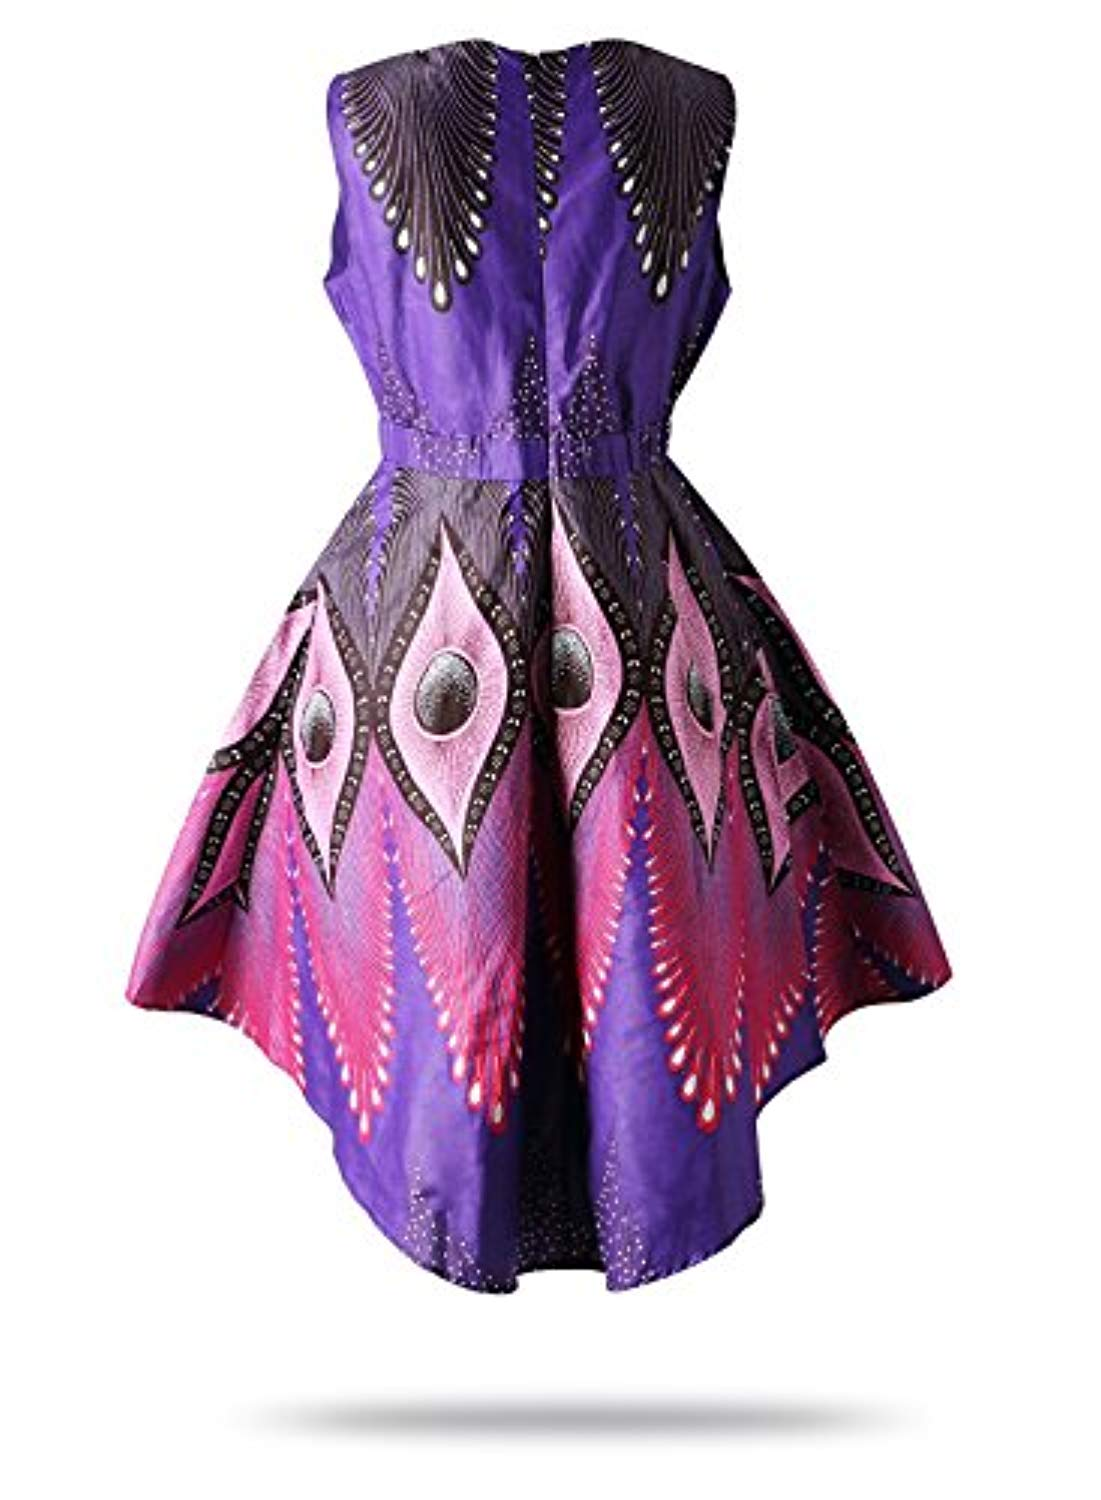 FANS FACE Women's African Print V Neck Sleeveless Traditional Clothing Casual Party Dress - Ufumbuzi - Home